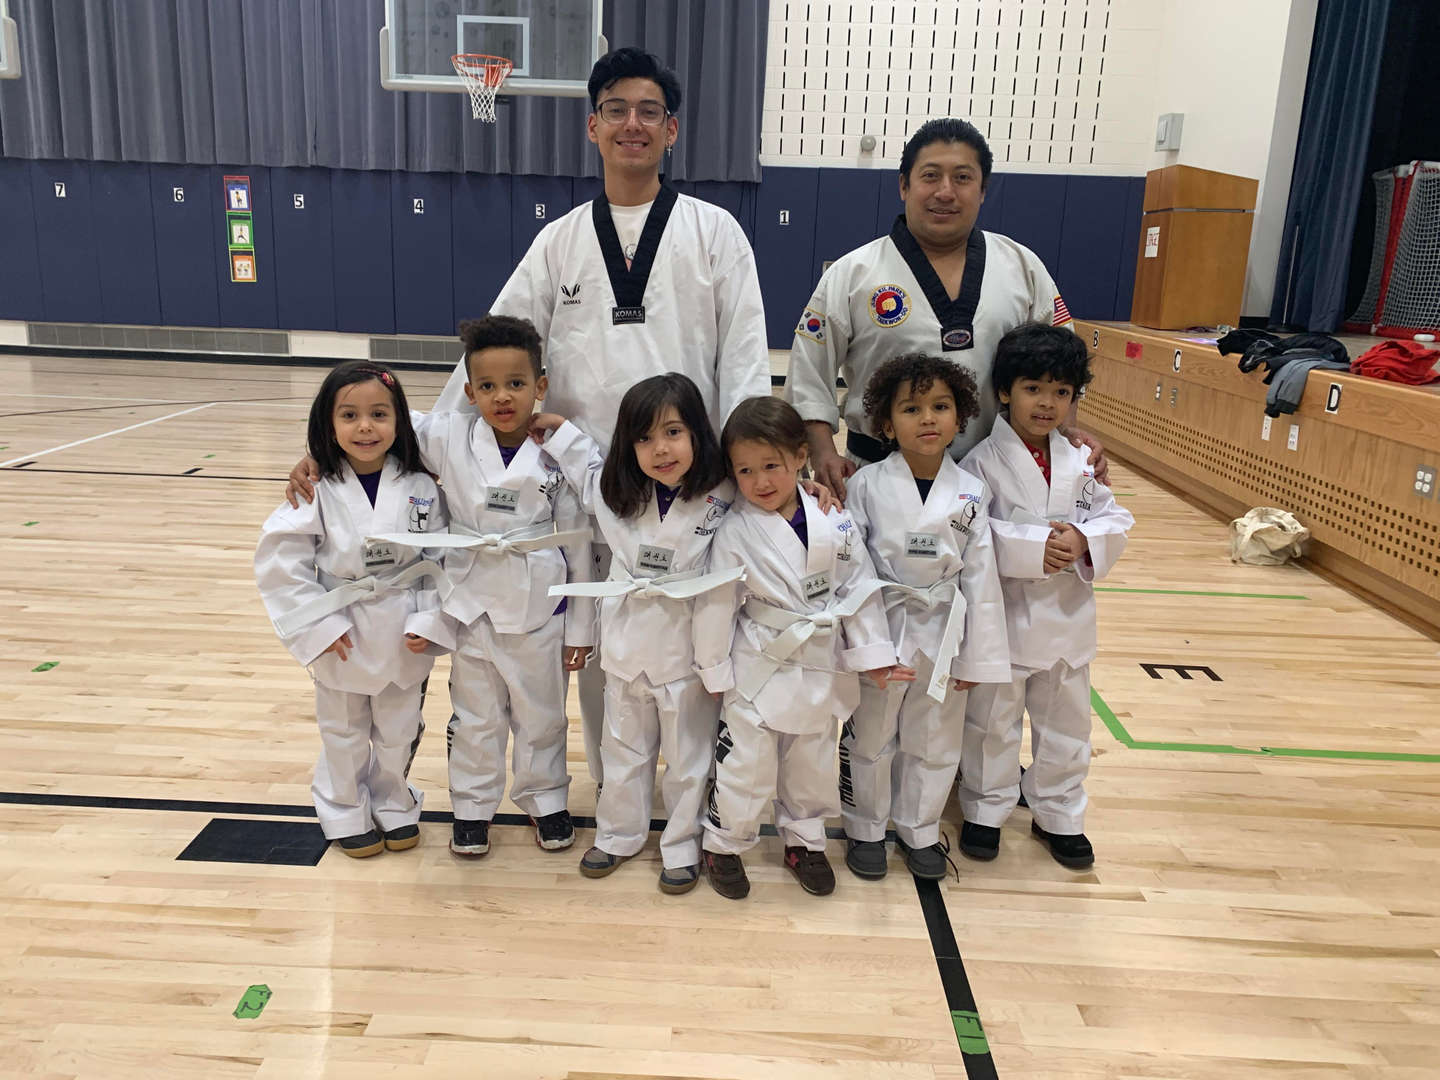 Students and instructors learning about karate